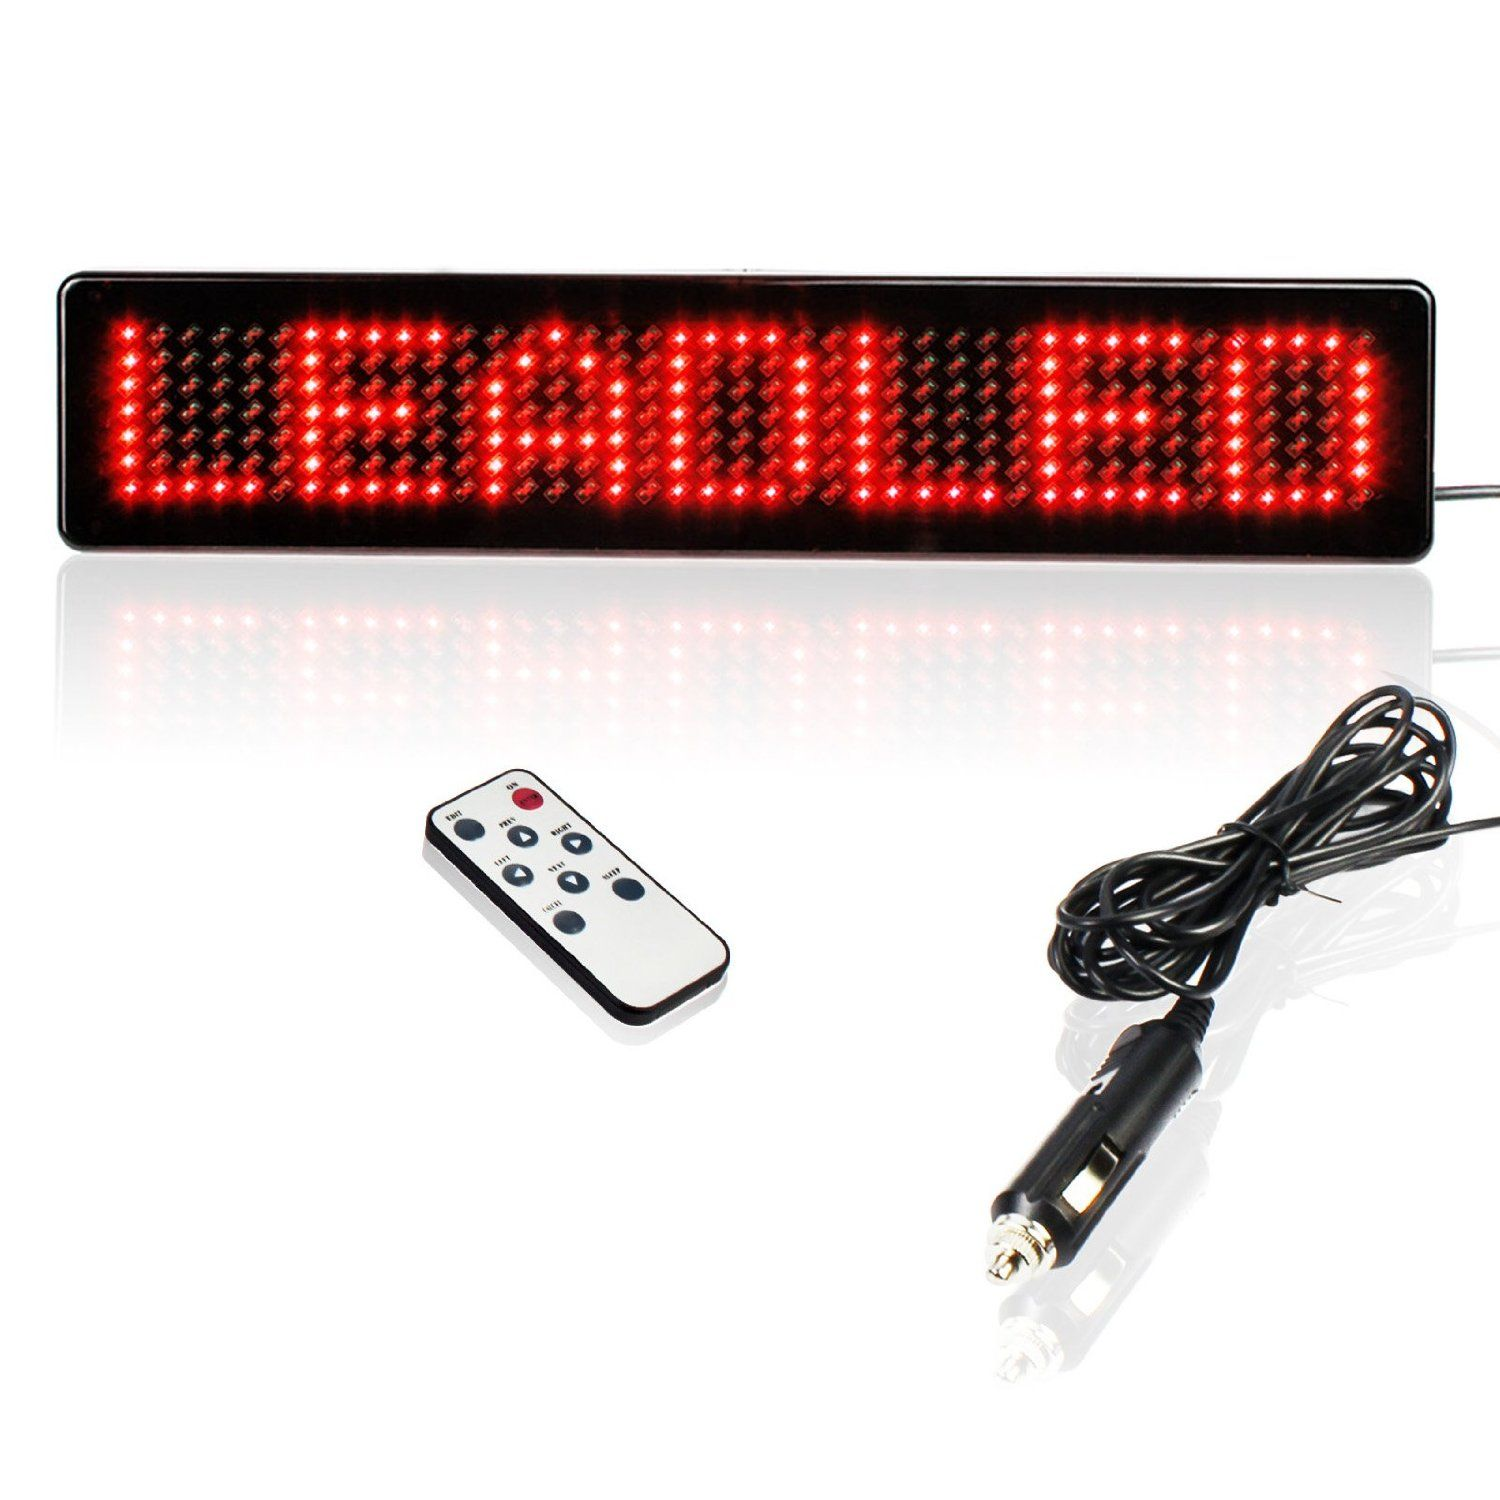 Leadleds 12 Volt Led Car Sign Programmable Scrolling Red Message Sign Board Easy To Program By Remote Controller Red Amazon Co U Led Signs Car Led Red Led